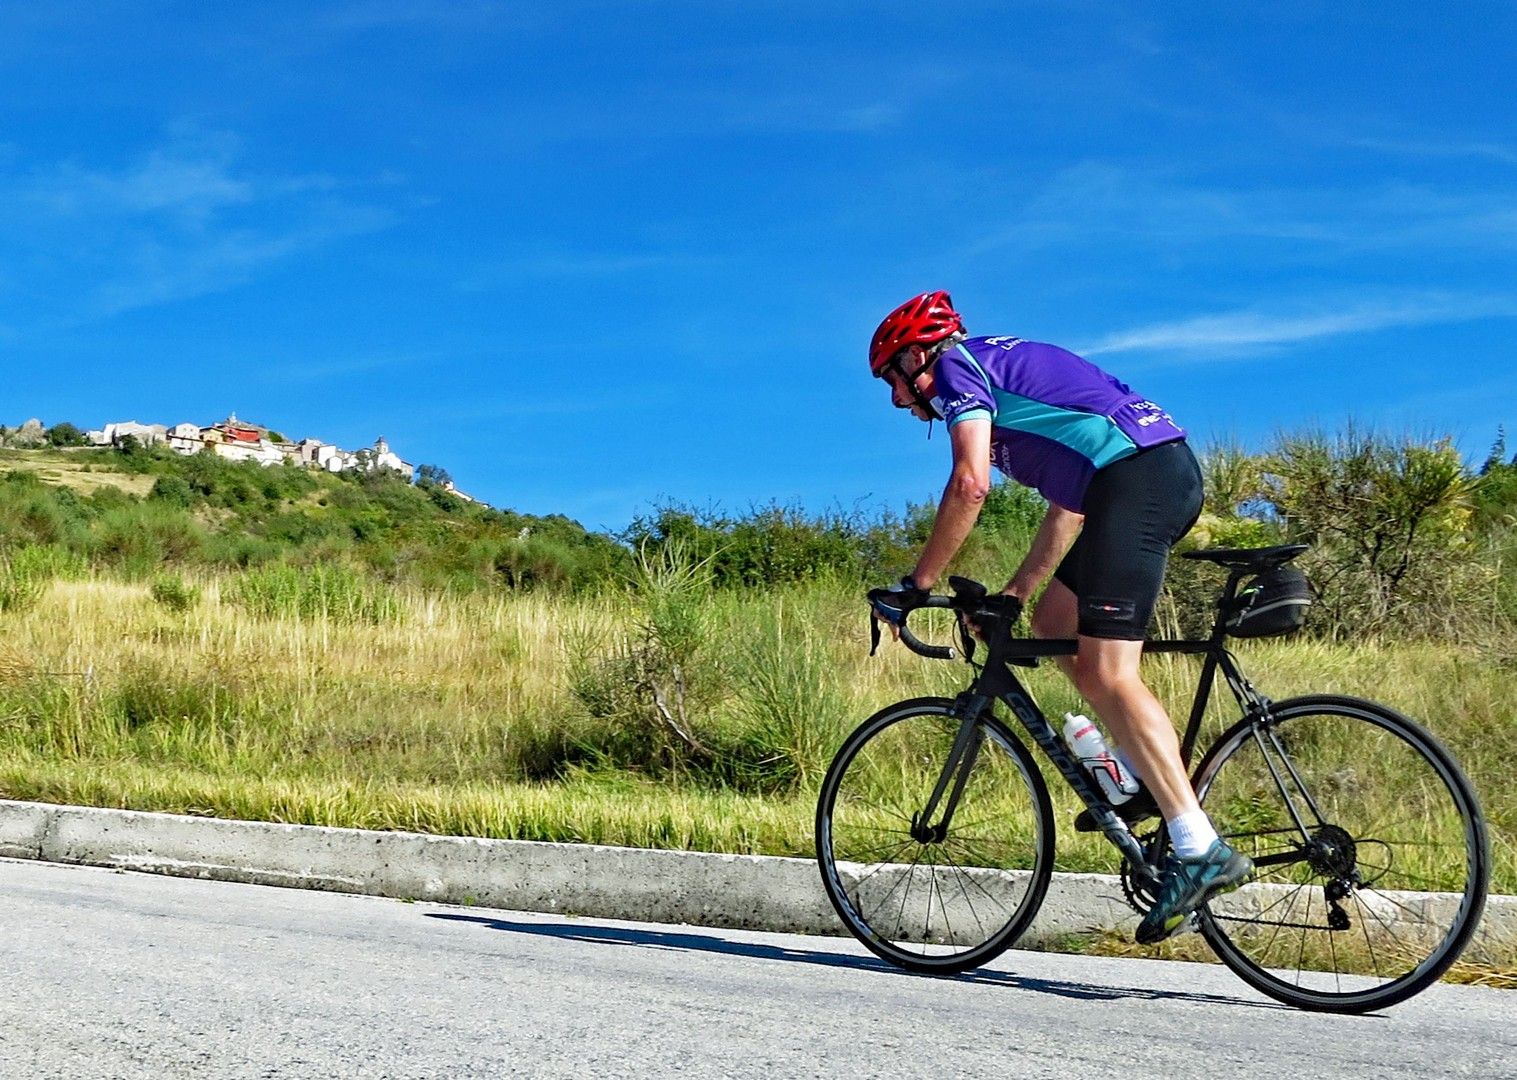 fantastic-scenery-road-cycling-through-italy.jpg - Italy - Grand Traverse - North to South (17 days) - Guided Road Cycling Holiday - Road Cycling